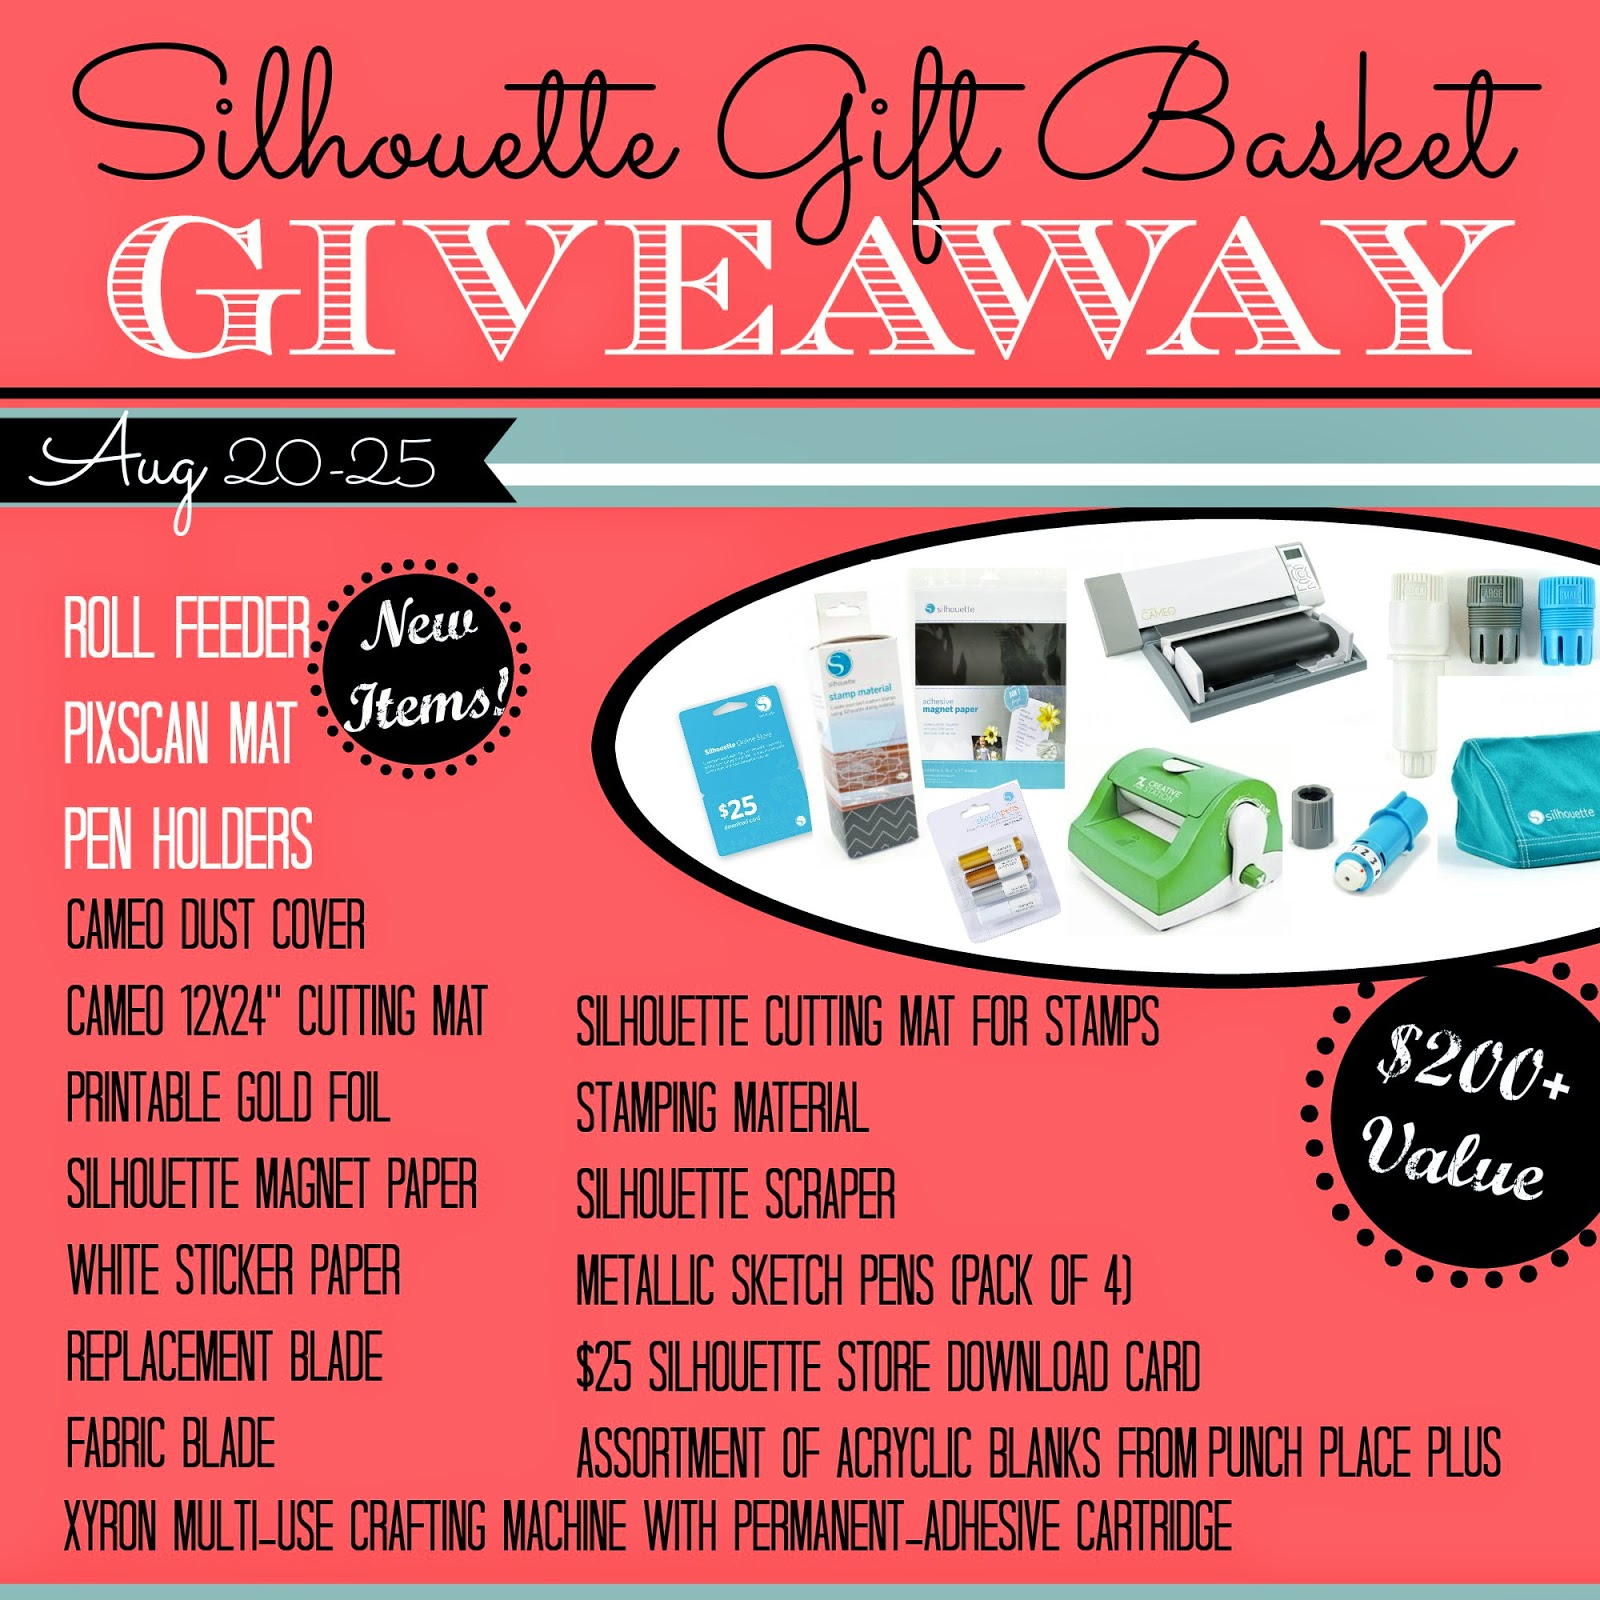 August 2014 silhouette school 200 silhouette gift basket giveaway with pixscan roll feeder more solutioingenieria Image collections